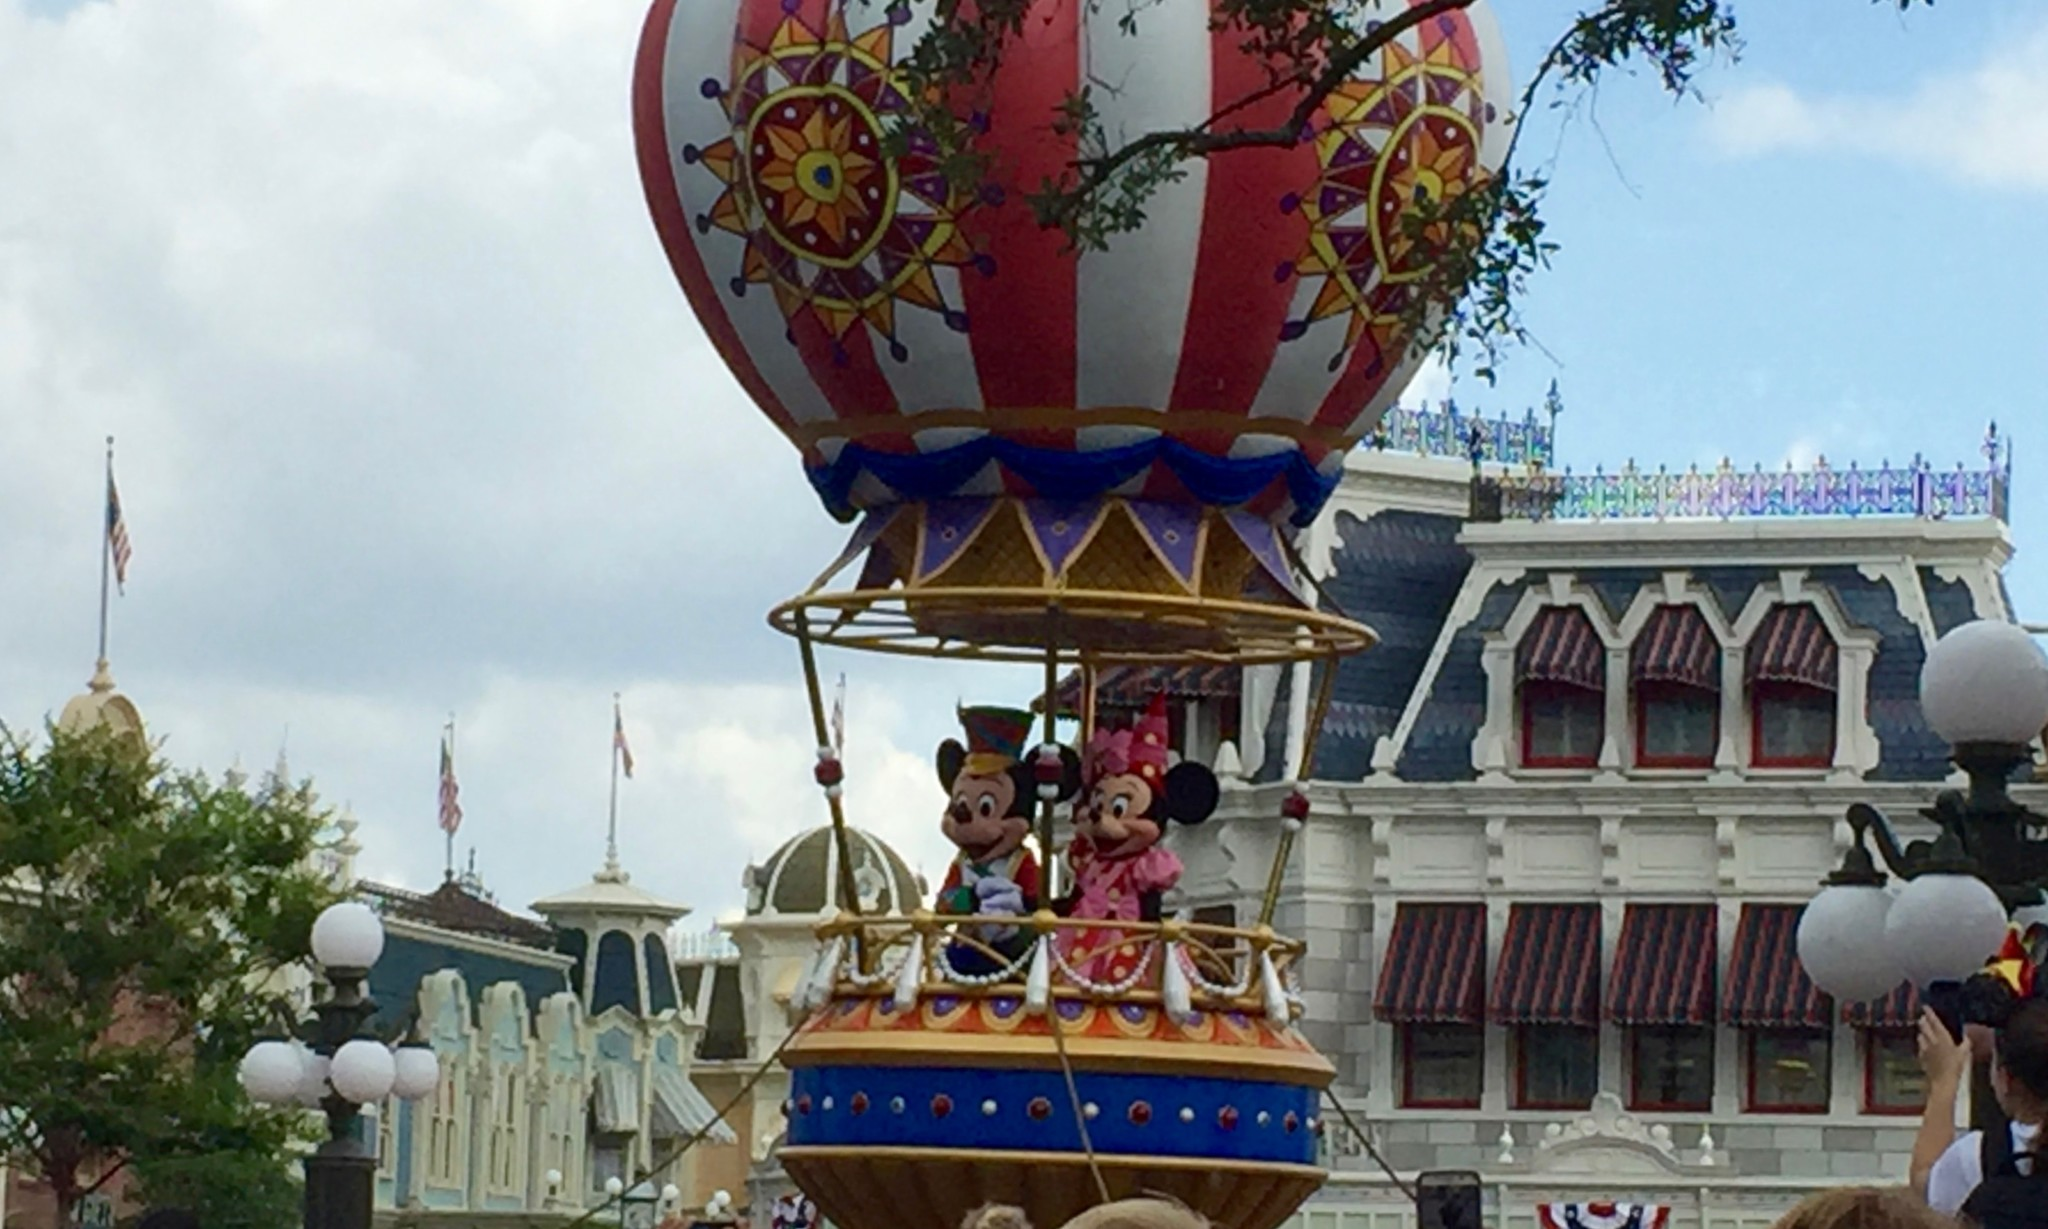 Mickey and Minnie Mouse Float for Magic Kingdom Main Street Parade